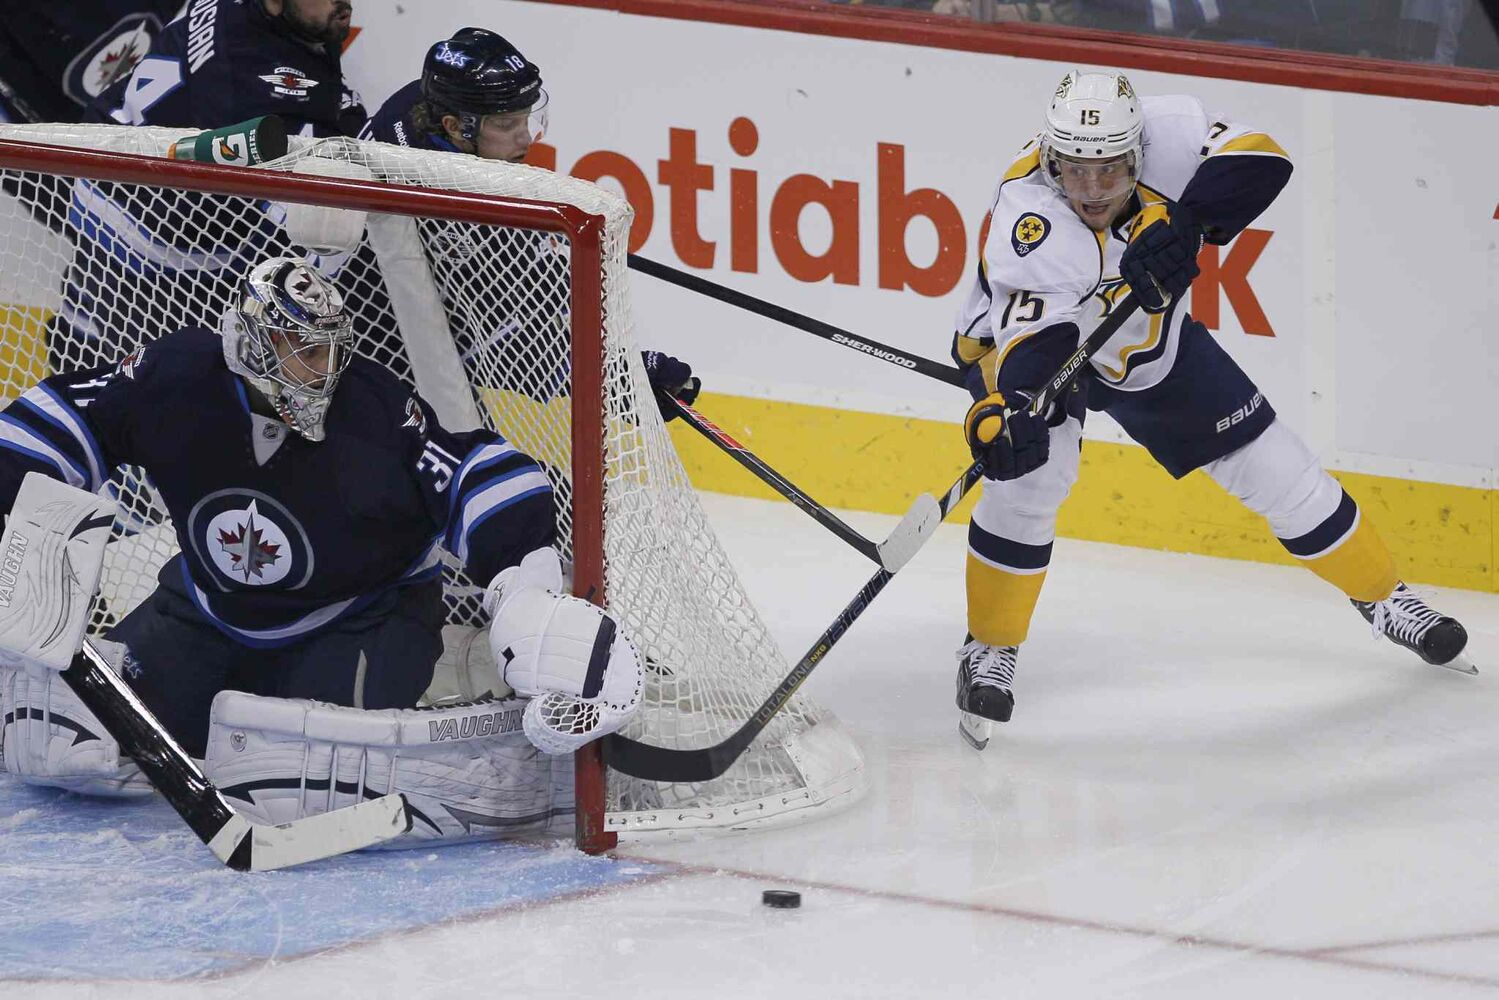 Nashville Predators' Craig Smith (15) makes a pass out in front of Winnipeg Jets' goaltender Ondrej Pavelec during the first period.